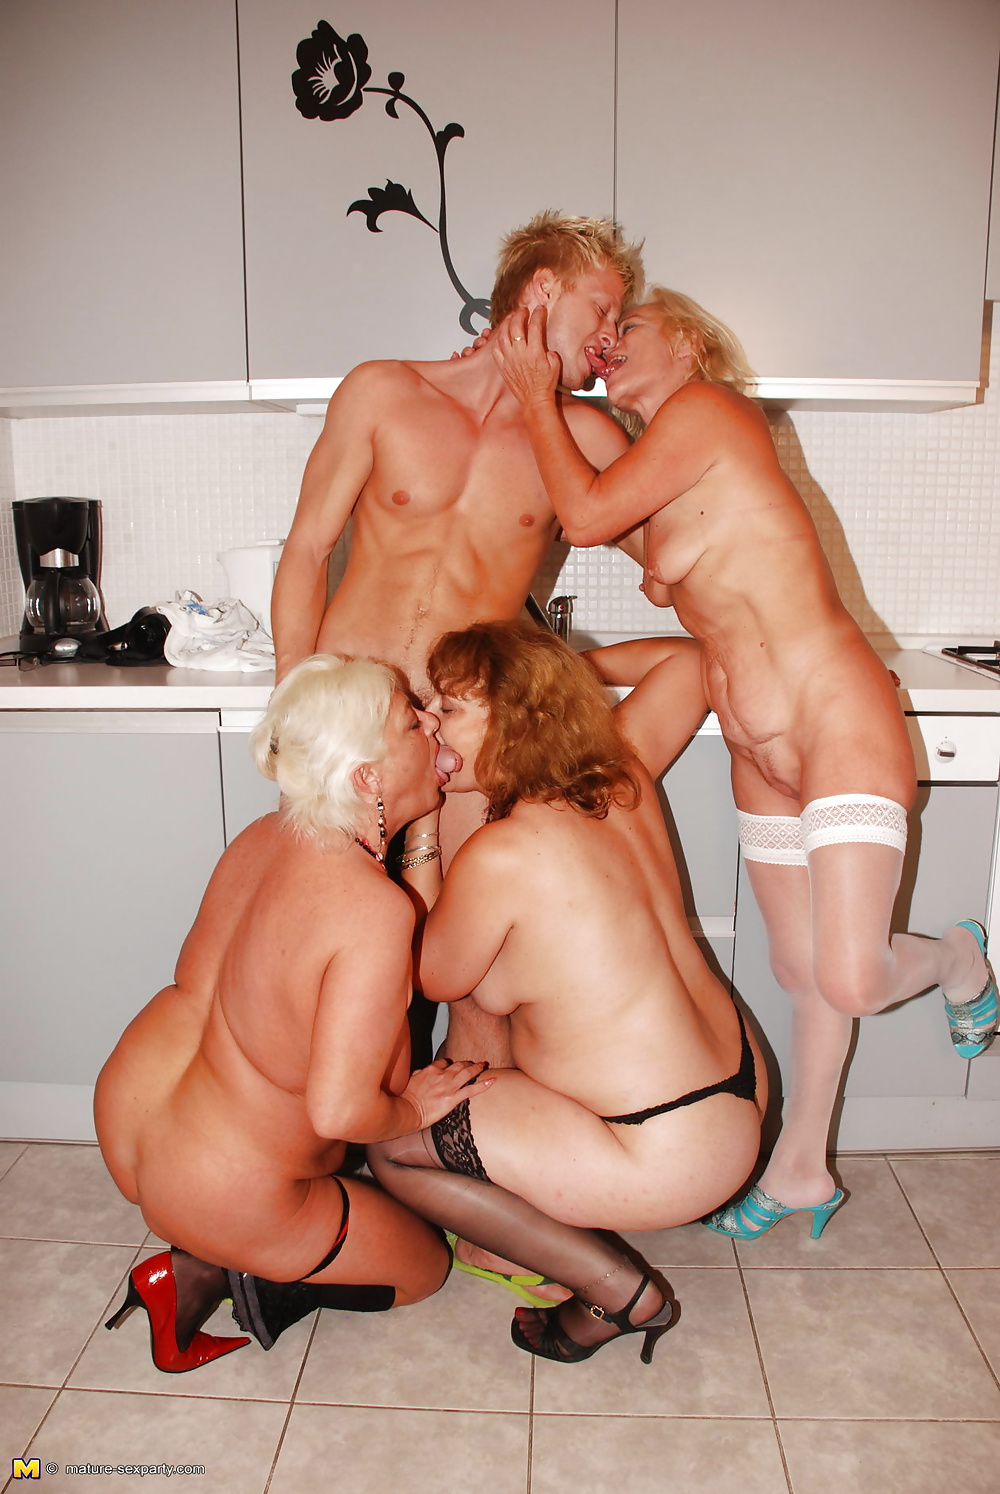 Granny Group Sex Galery Images, Free Granny Group Fuck Galery, Free